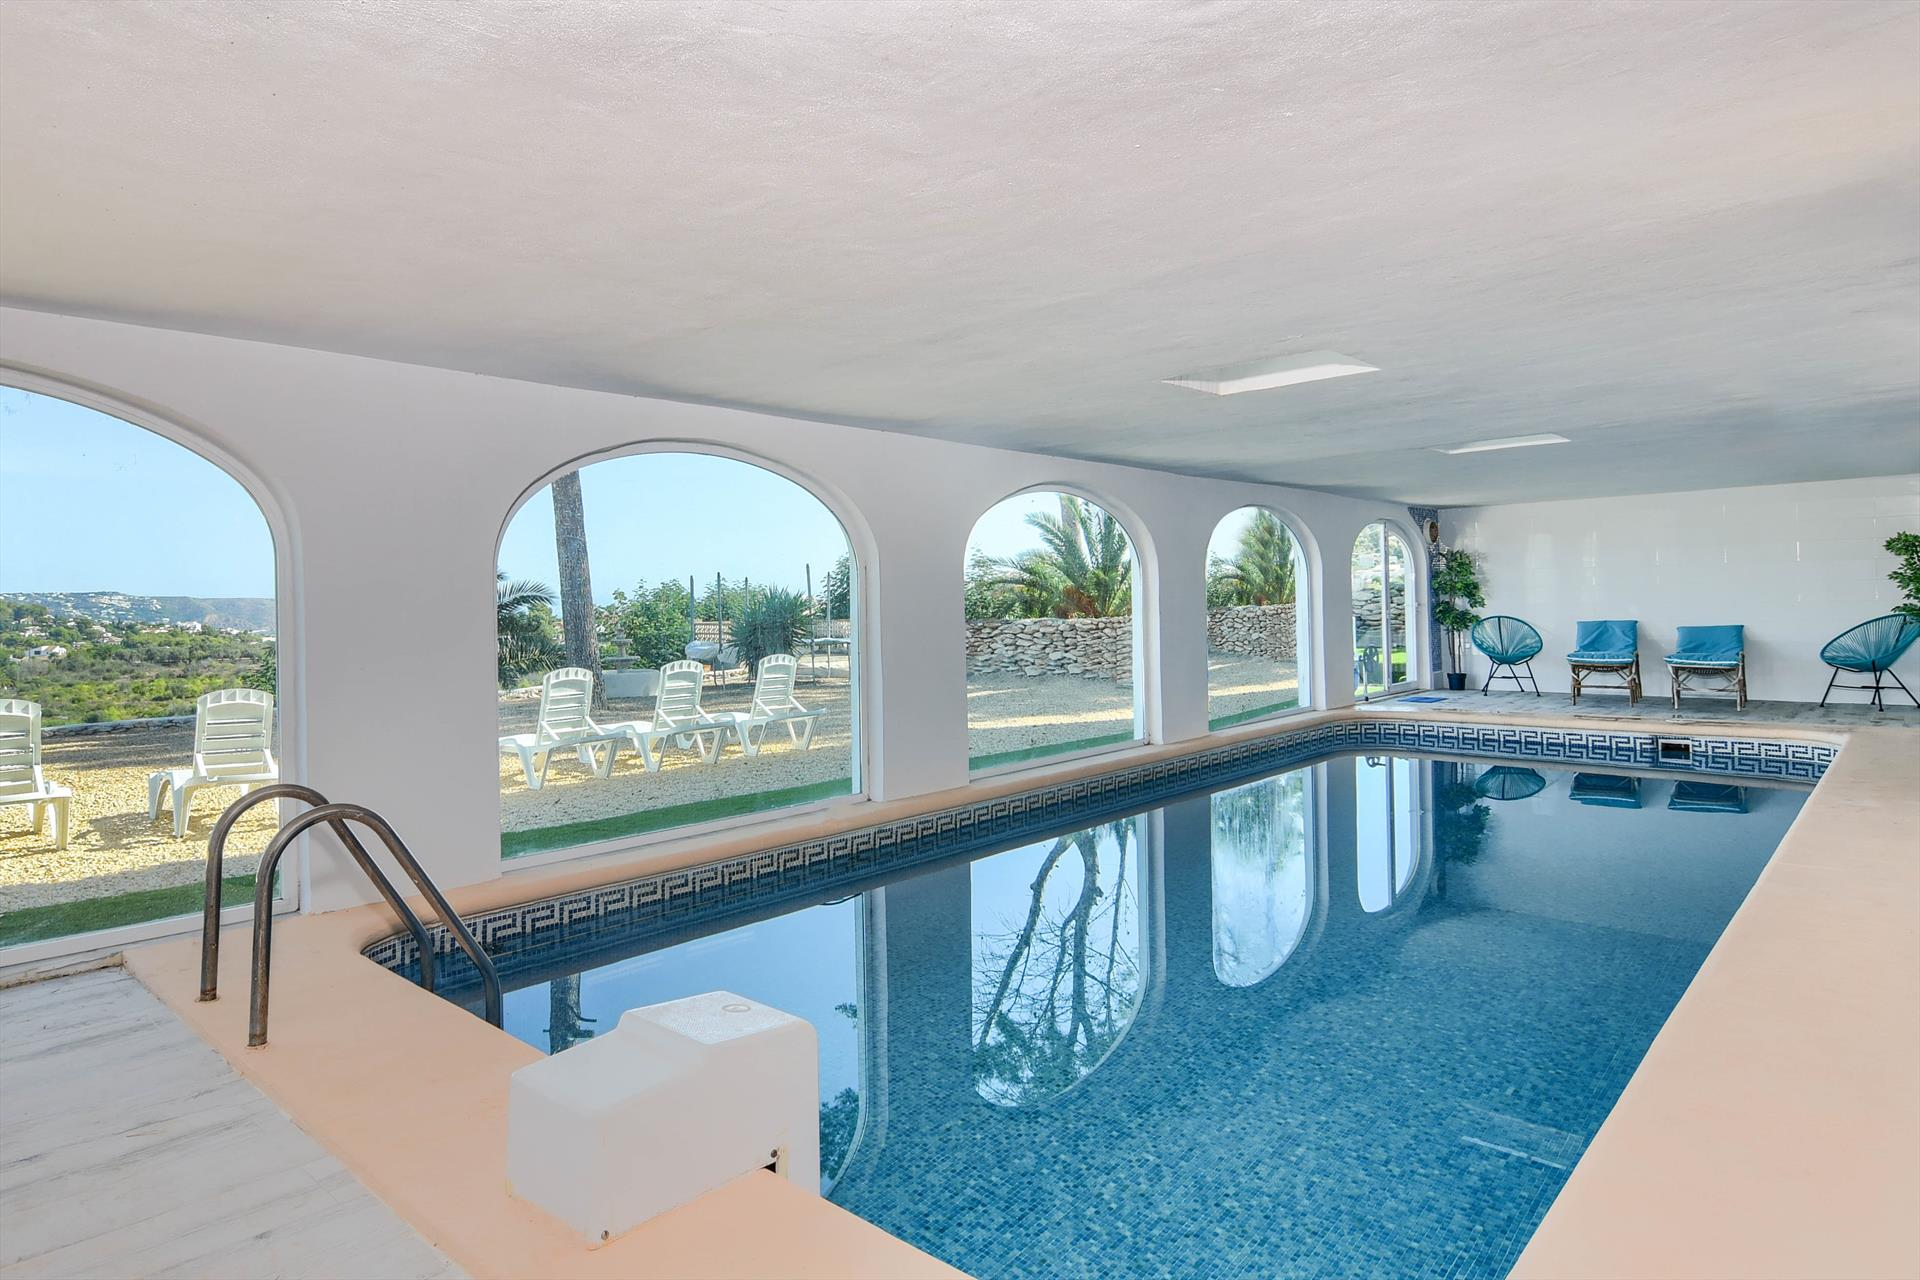 Kilima 8 pax, Large and comfortable villa in Javea, on the Costa Blanca, Spain  with heated pool for 8 persons.....